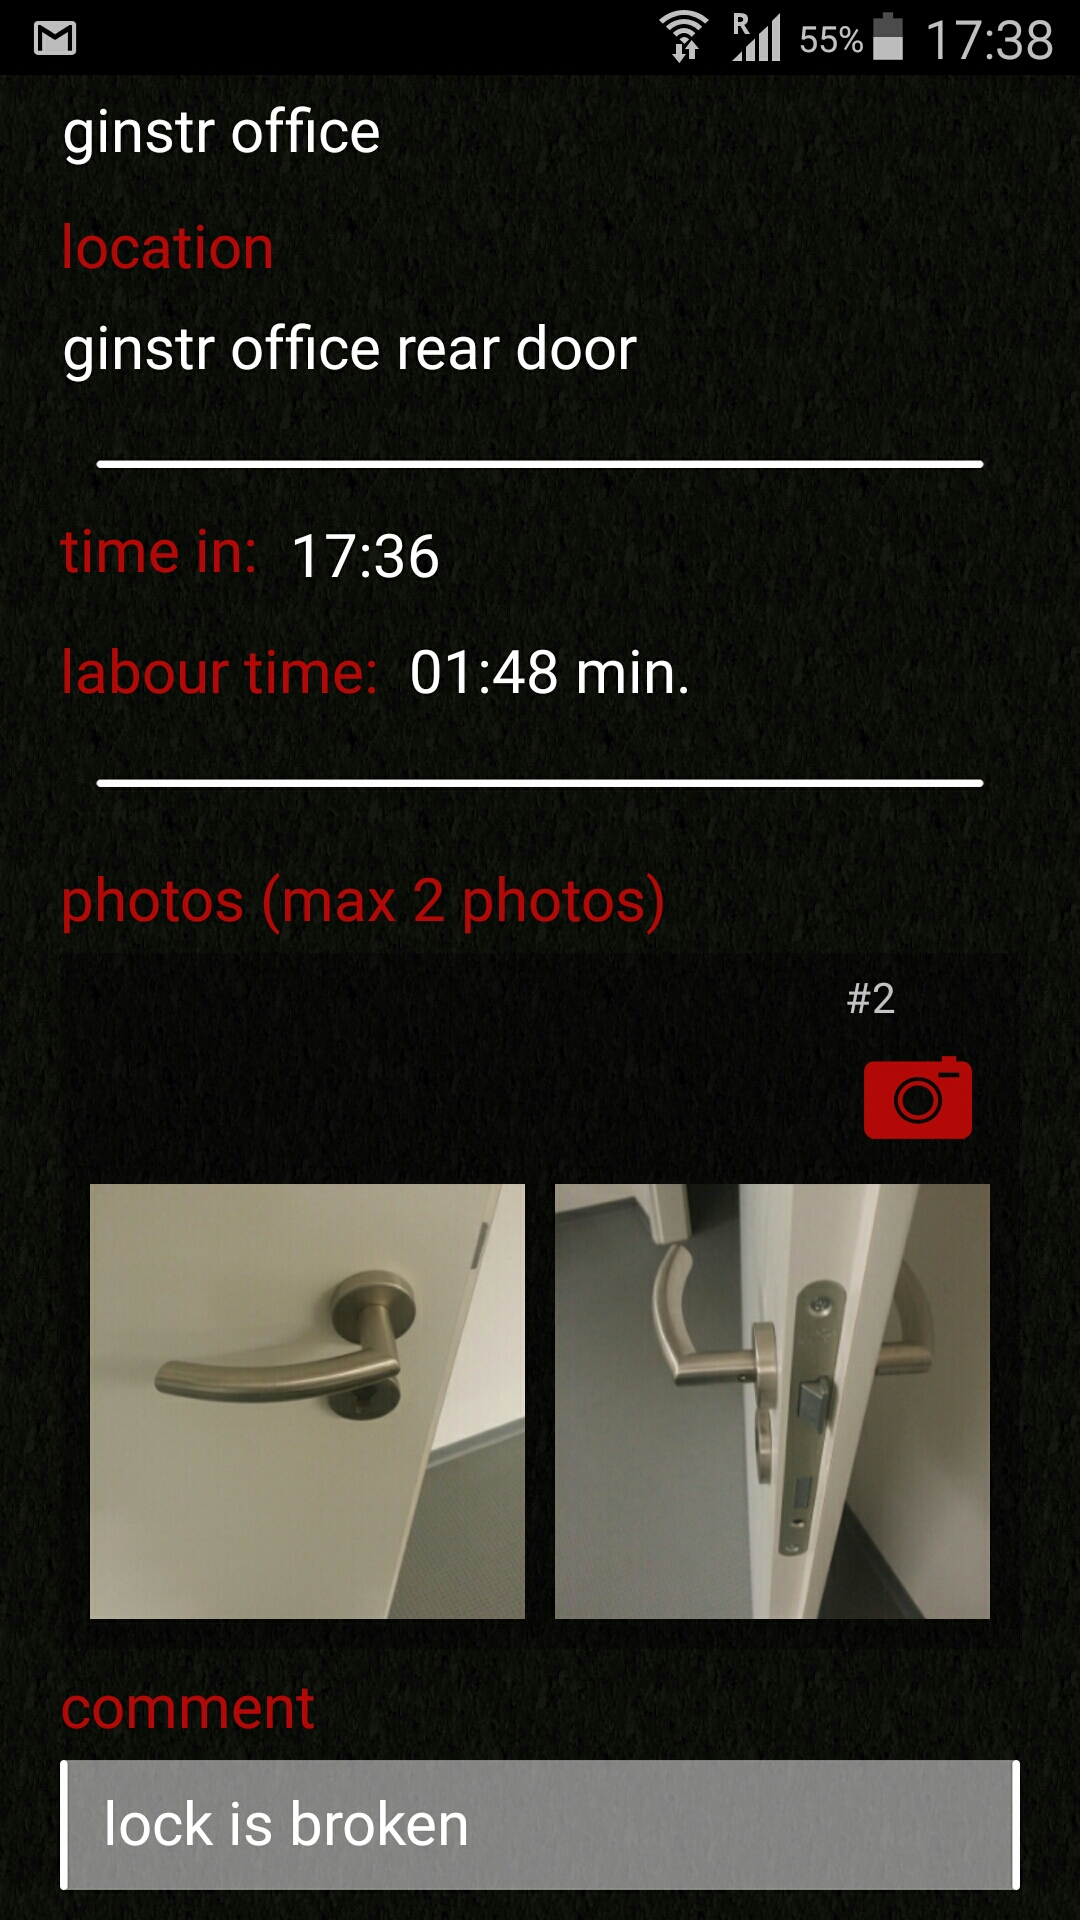 ginstr_app-labourTimePerLocation_EN_4